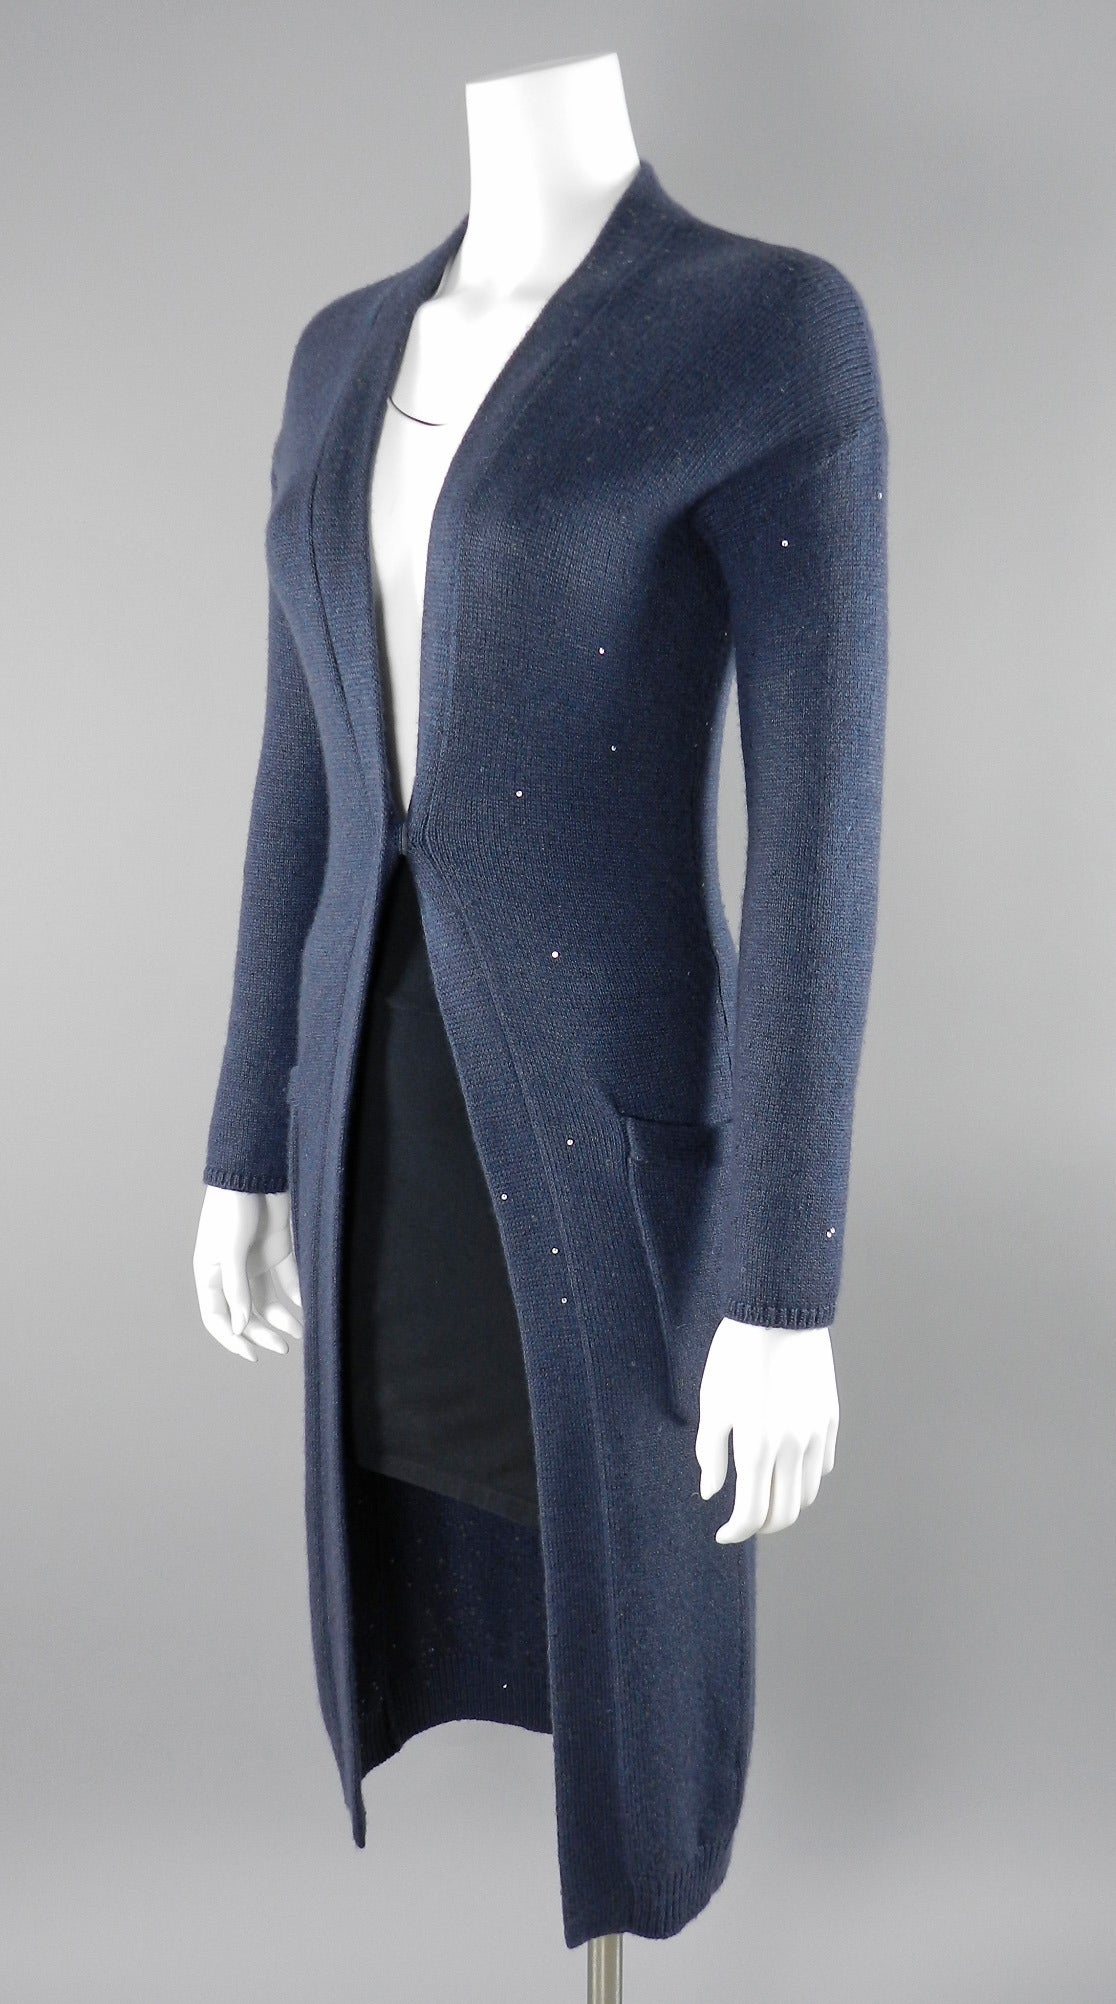 Brunello Cucinelli Cashmere Long Cardigan Sweater at 1stdibs